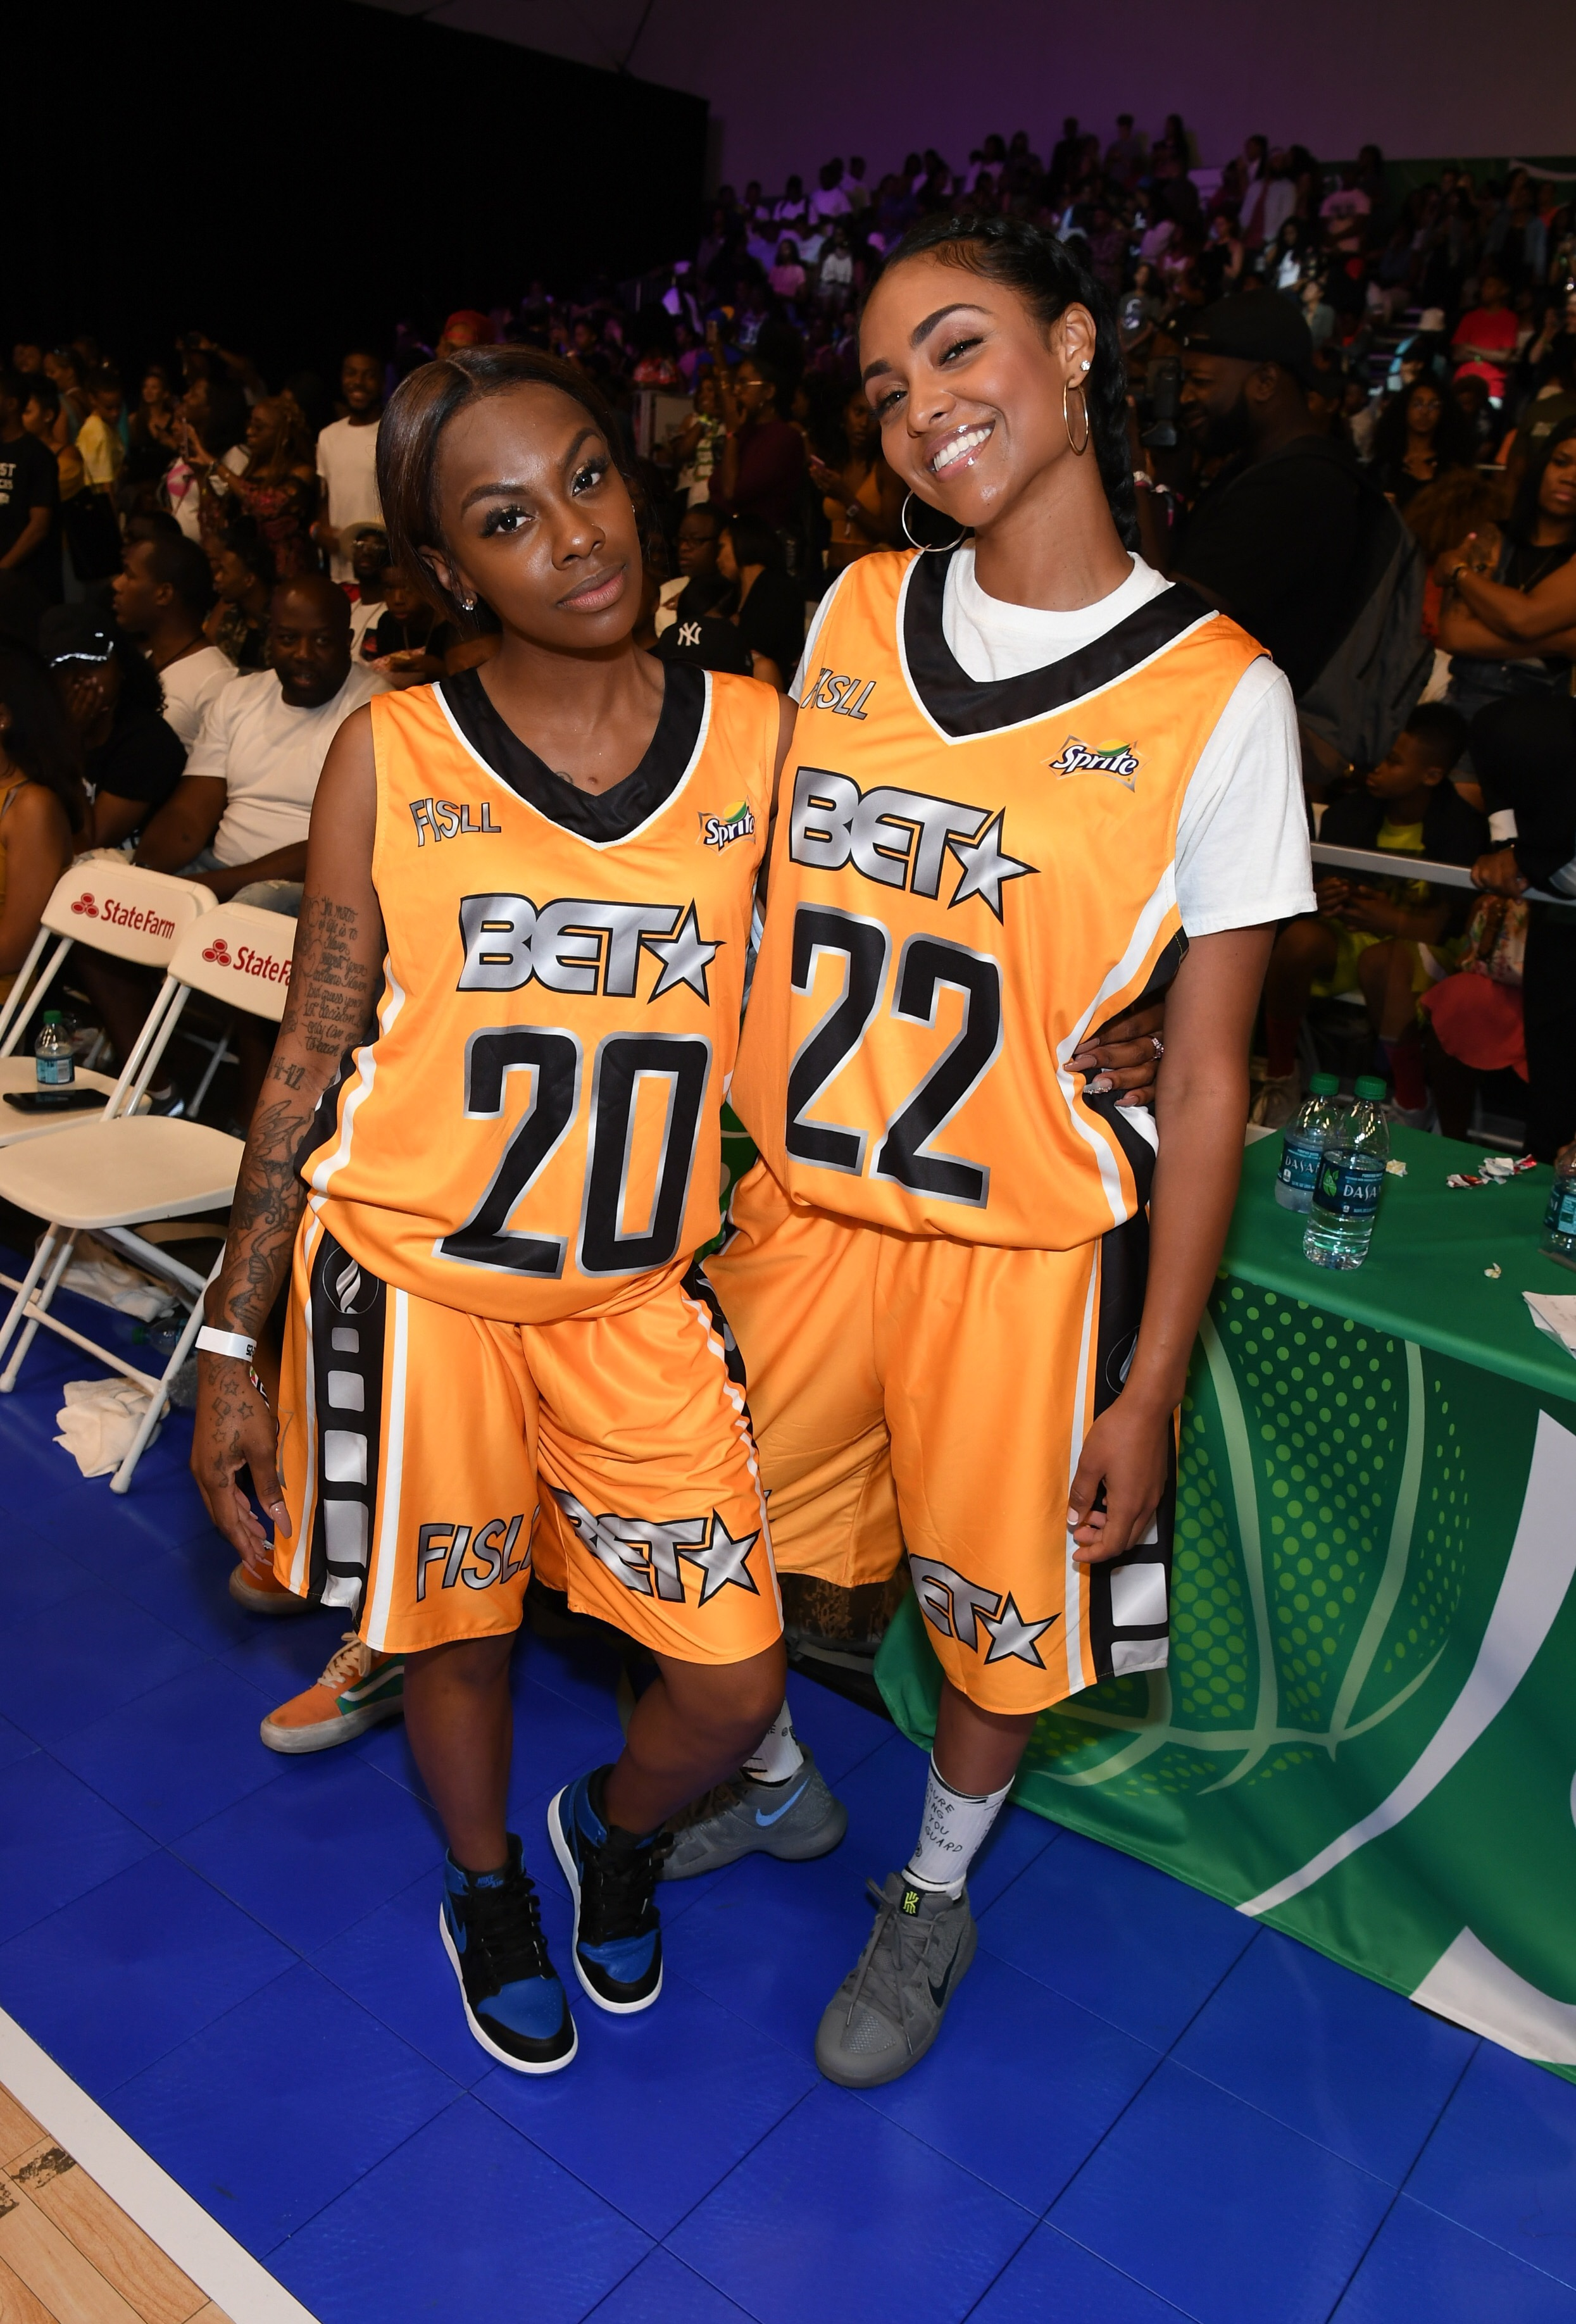 Celebrity basketball games